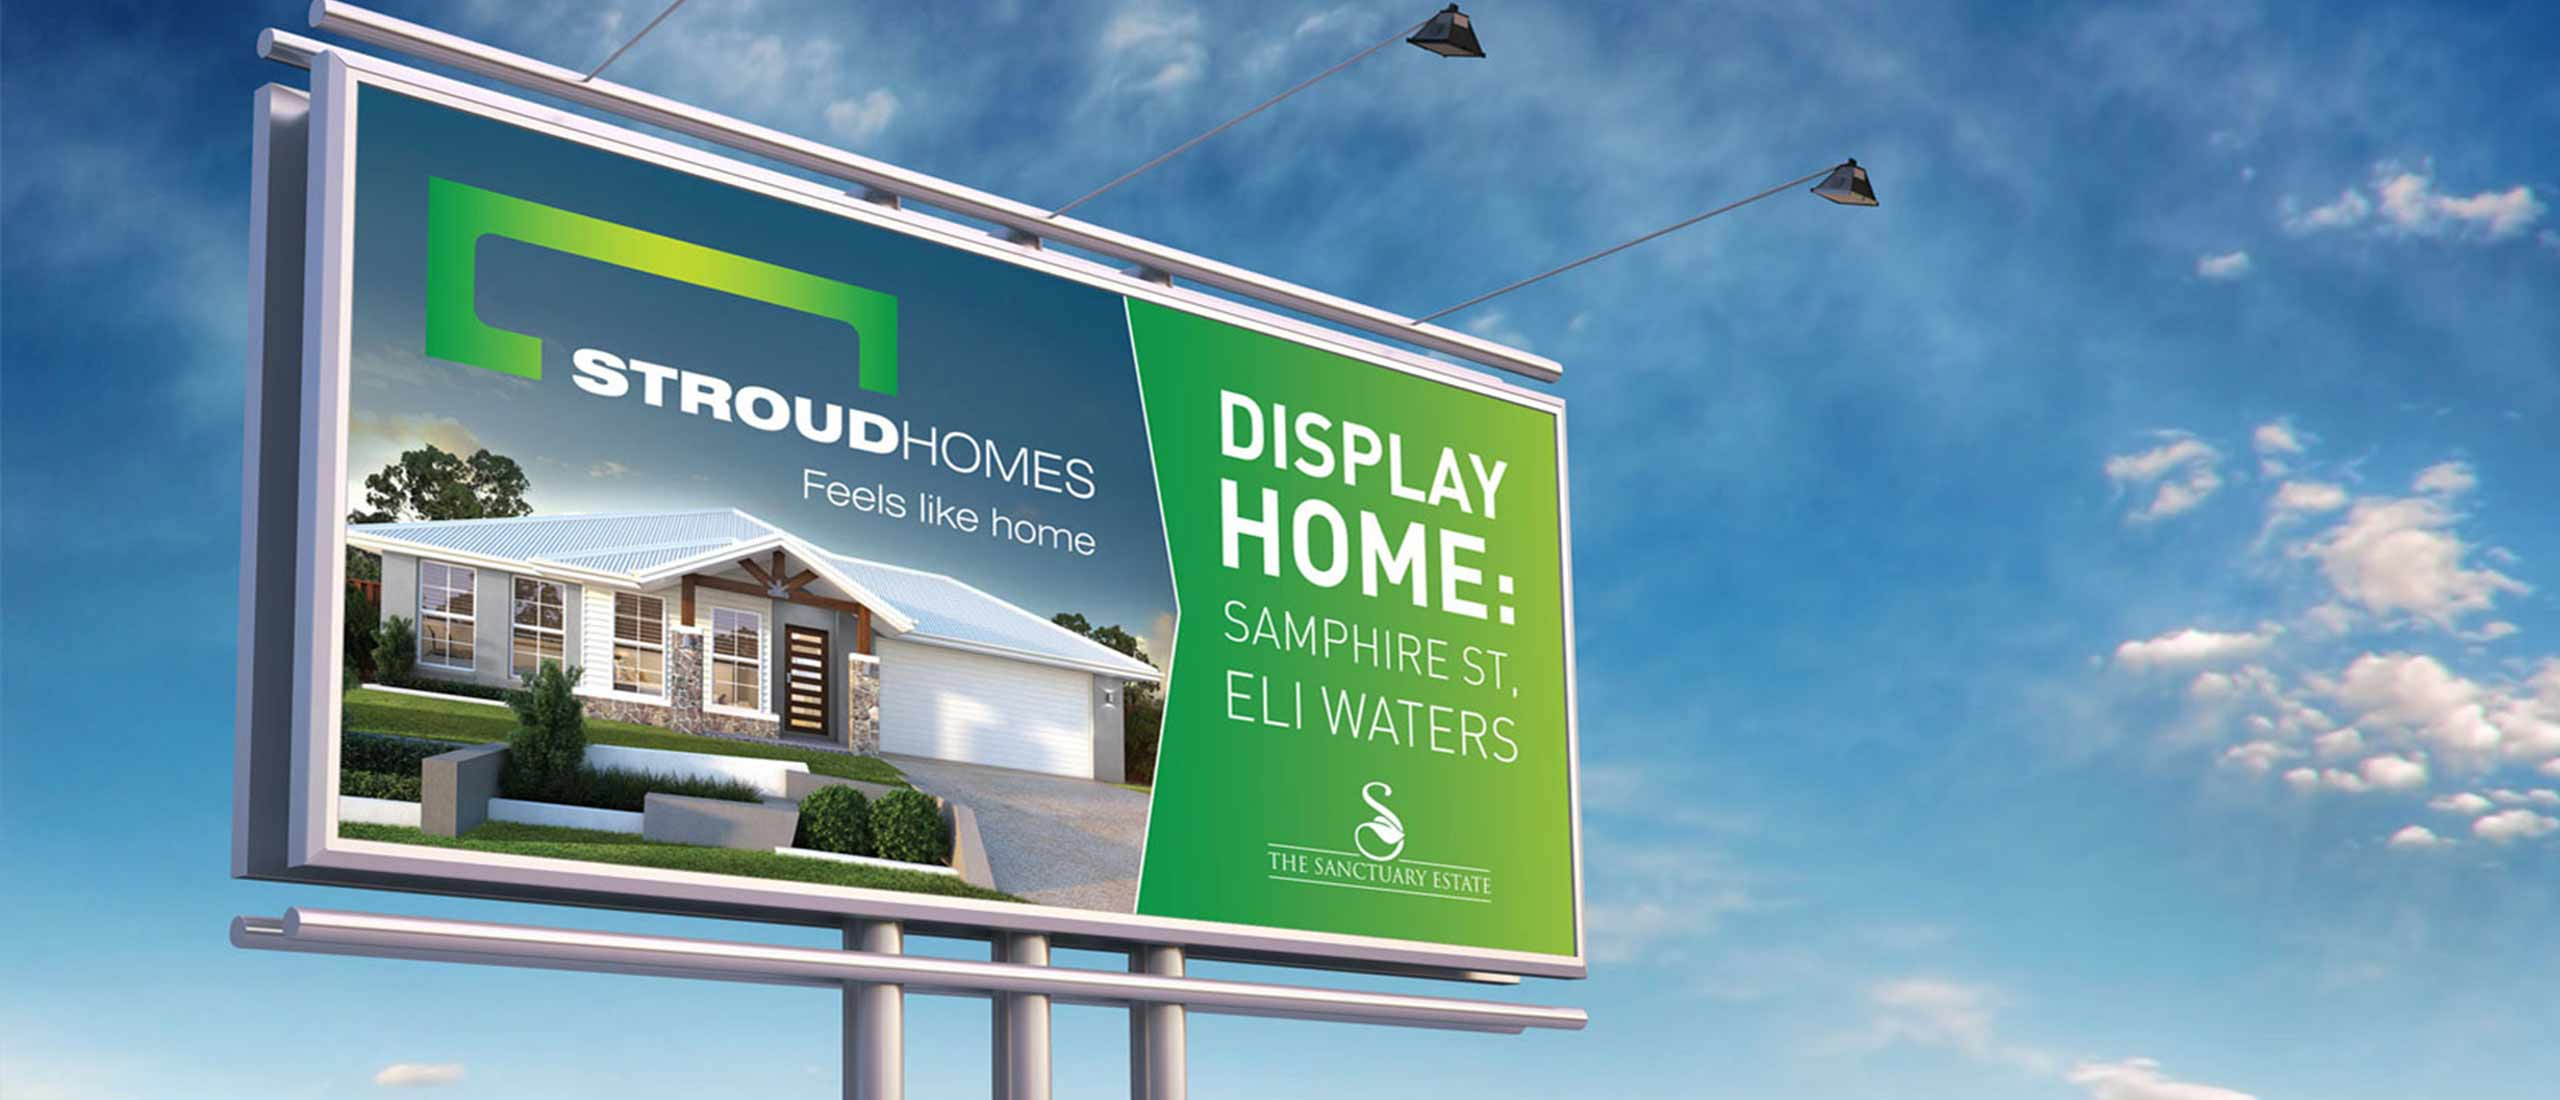 Stroud Homes Billboard Design